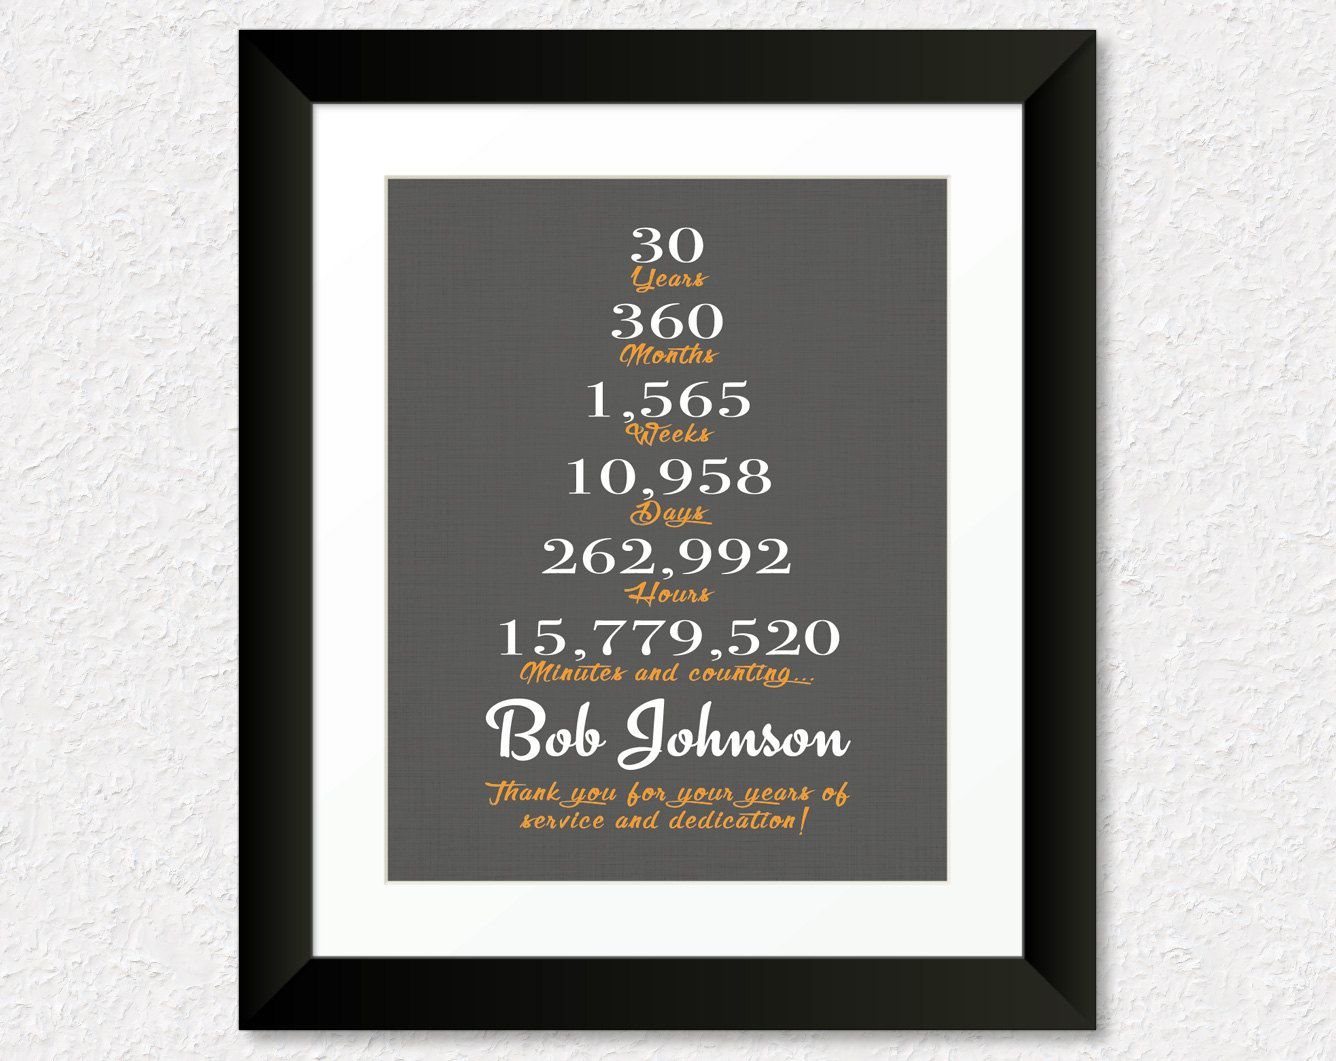 49th Wedding Anniversary Gift Ideas For Parents : How To Plan A Wedding Tiny Wedding Planning Book Solid Reddit Wedding ...